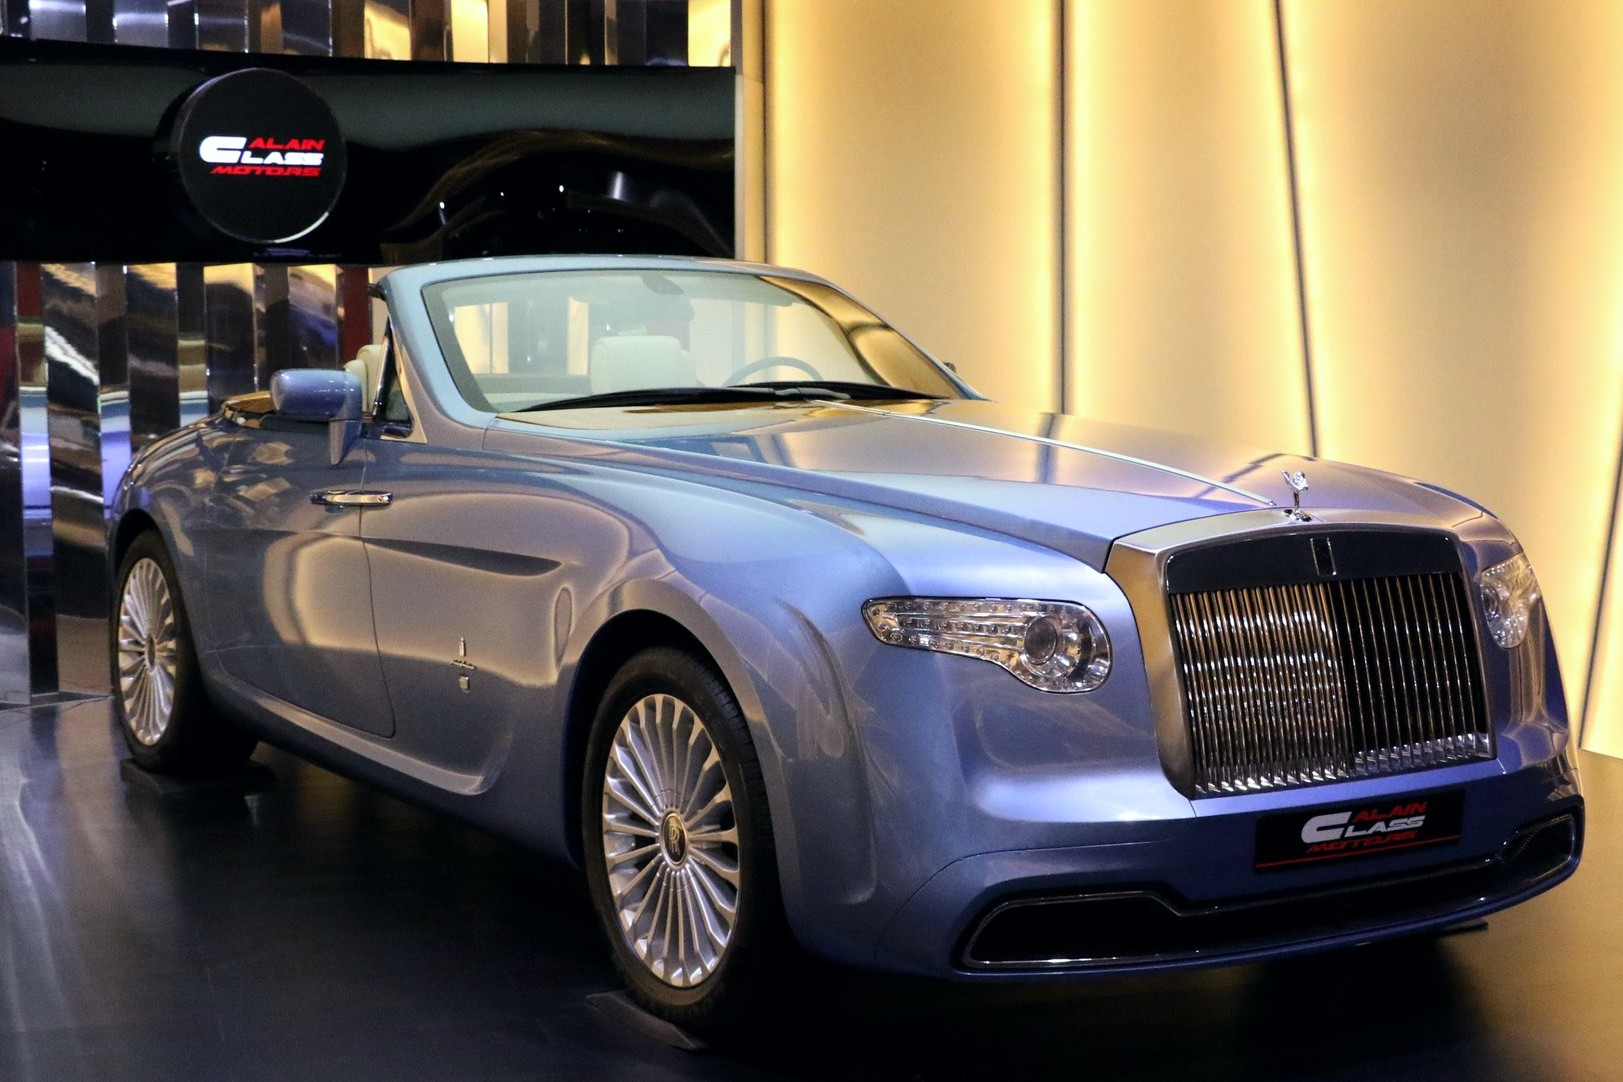 Why is Rolls Royce most expensive car in the world? Rolls Royce interiors, specs, and history. Plus, the most expensive Rolls Royce diamonds.